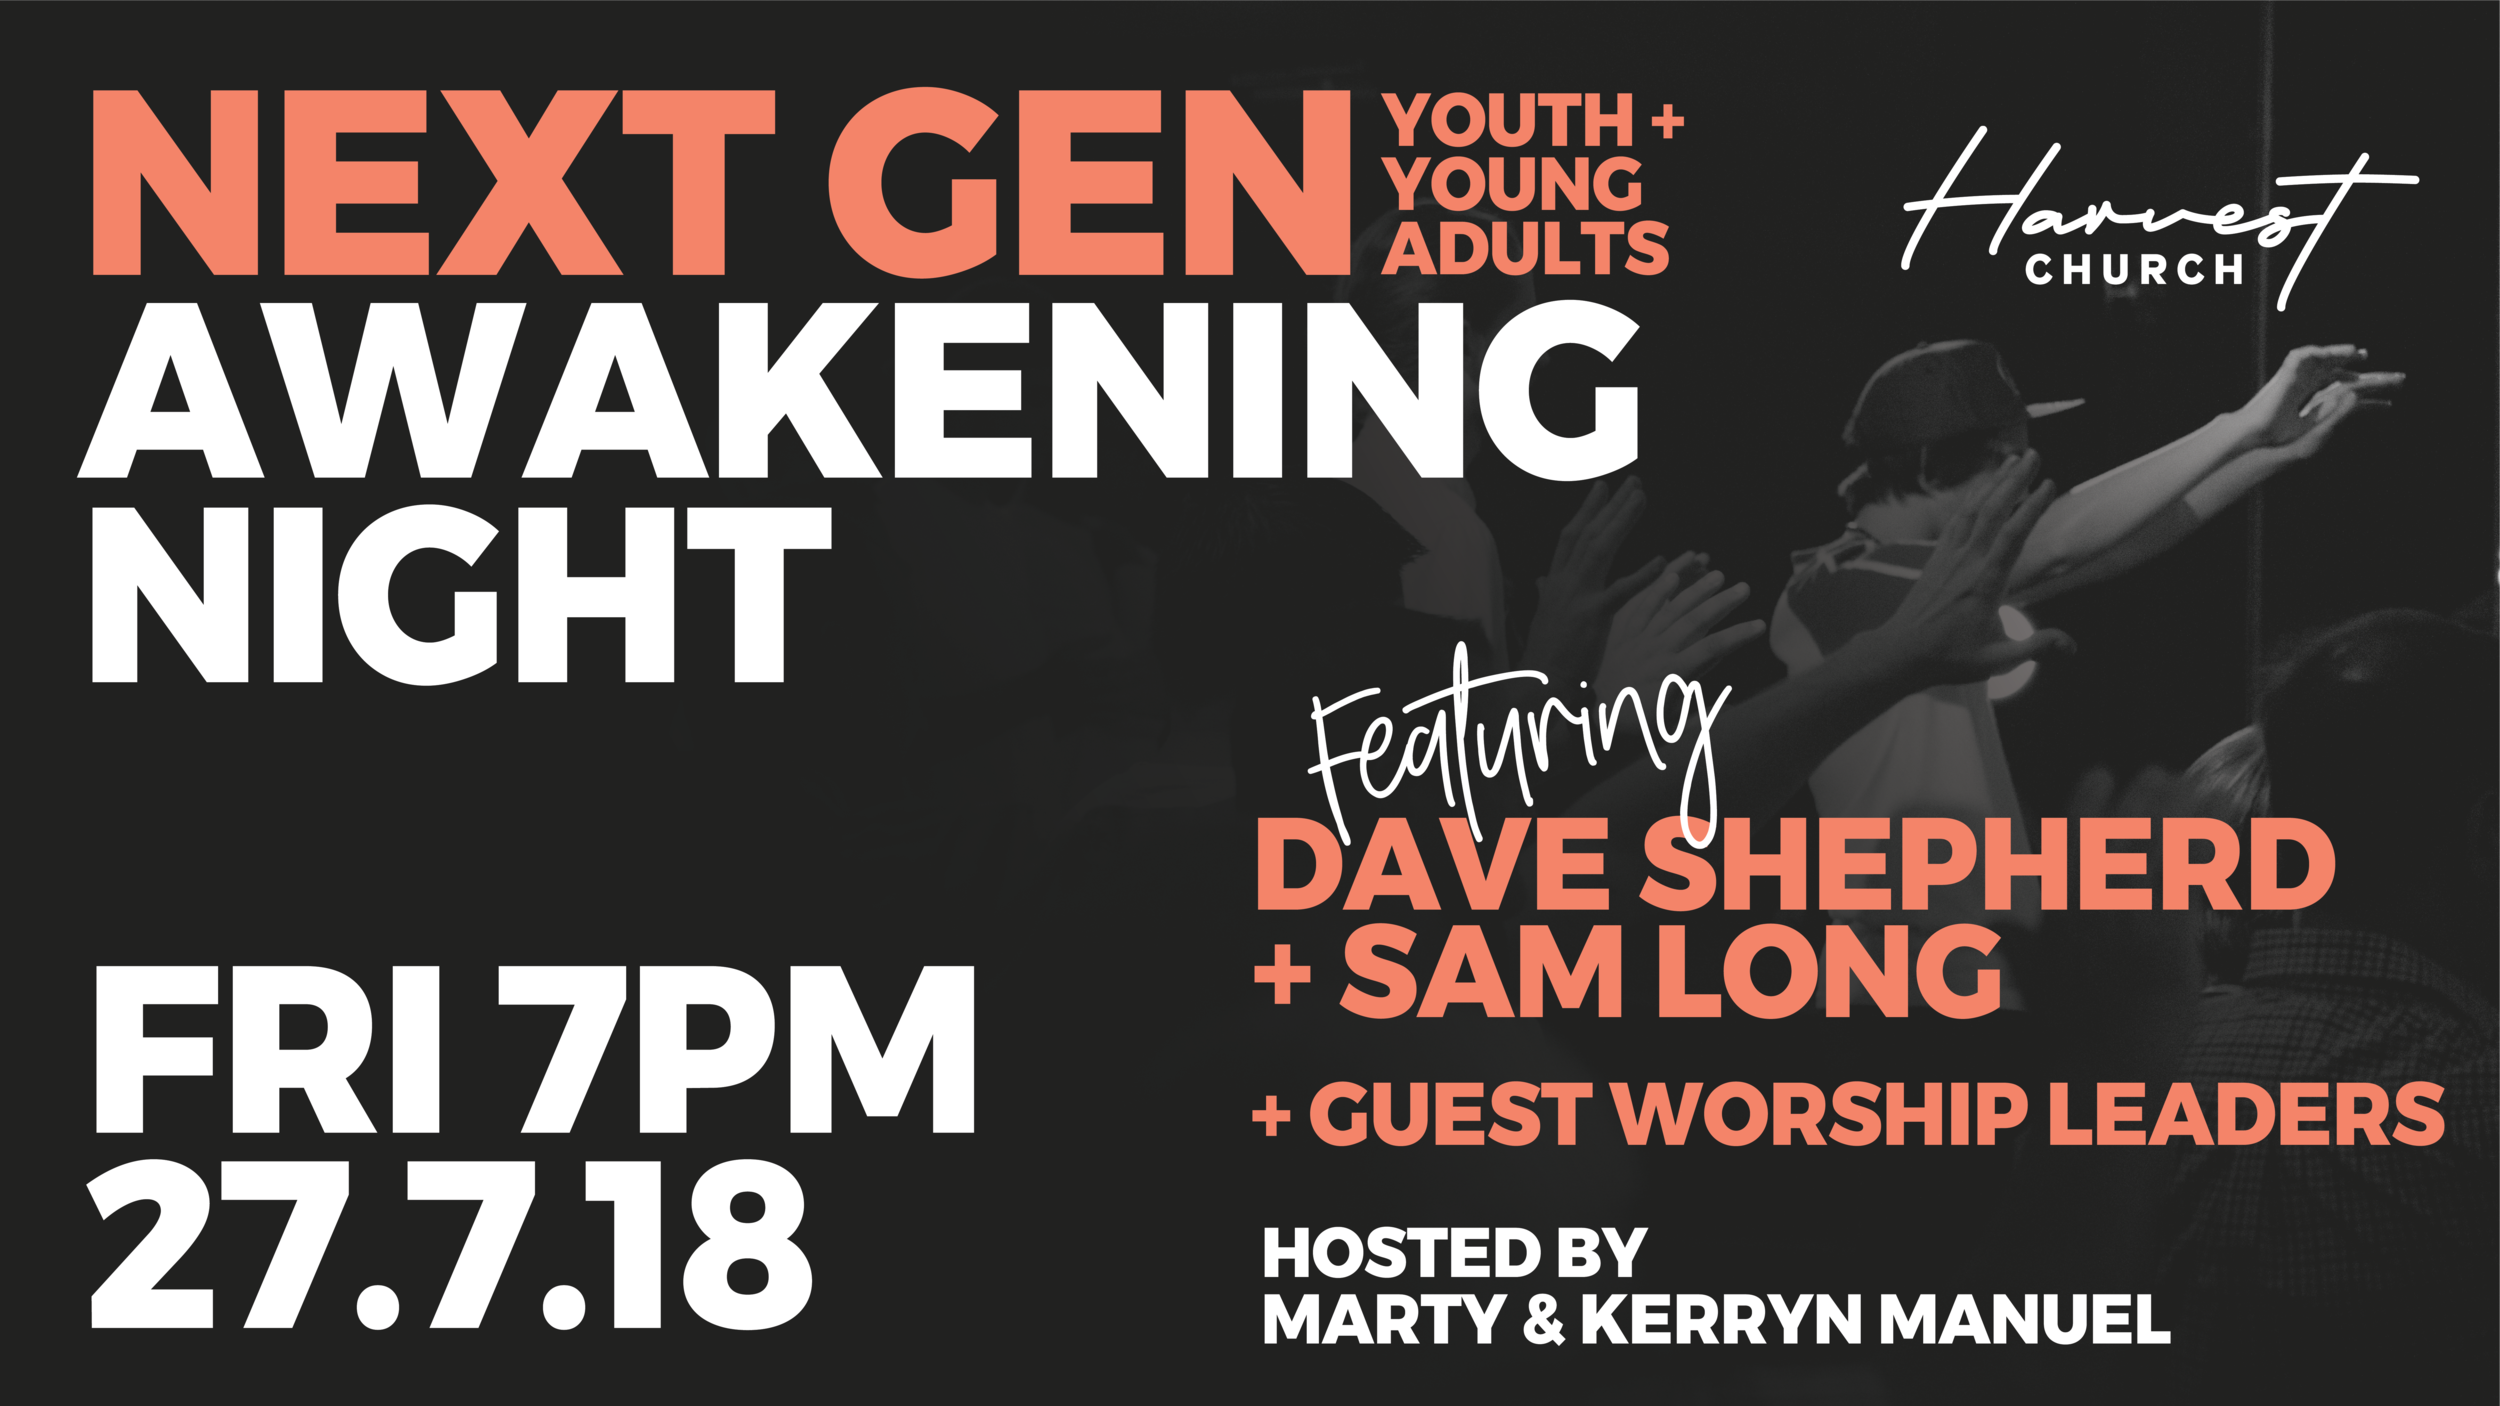 We are excited to announce that we have an Awakening Weekend planned in conjunction with the Awakening Australia National Tour.  Fri 27th July will be a FREE Youth + Young Adults night to gather Next Gen from all over SA, worship / intercession / encounter.  +SAM LONG from Youth Alive +DAVE SHEPHERD from Ignite Ministries +GUEST WORSHIP LEADERS  HOSTED BY MARTY + KERRYN MANUEL  This night is an opportunity to gather young Christians from around the state to worship, be inspired and encounter Jesus together. Our heart is to see Jesus transform us as young people as we seek Him, so that He can transform our local church, our city, our state and our nation through us.  Youth + Young Adult groups are so welcome! Please contact us for more info and to let us know you are coming as a group so we can host you well.  Cafe available